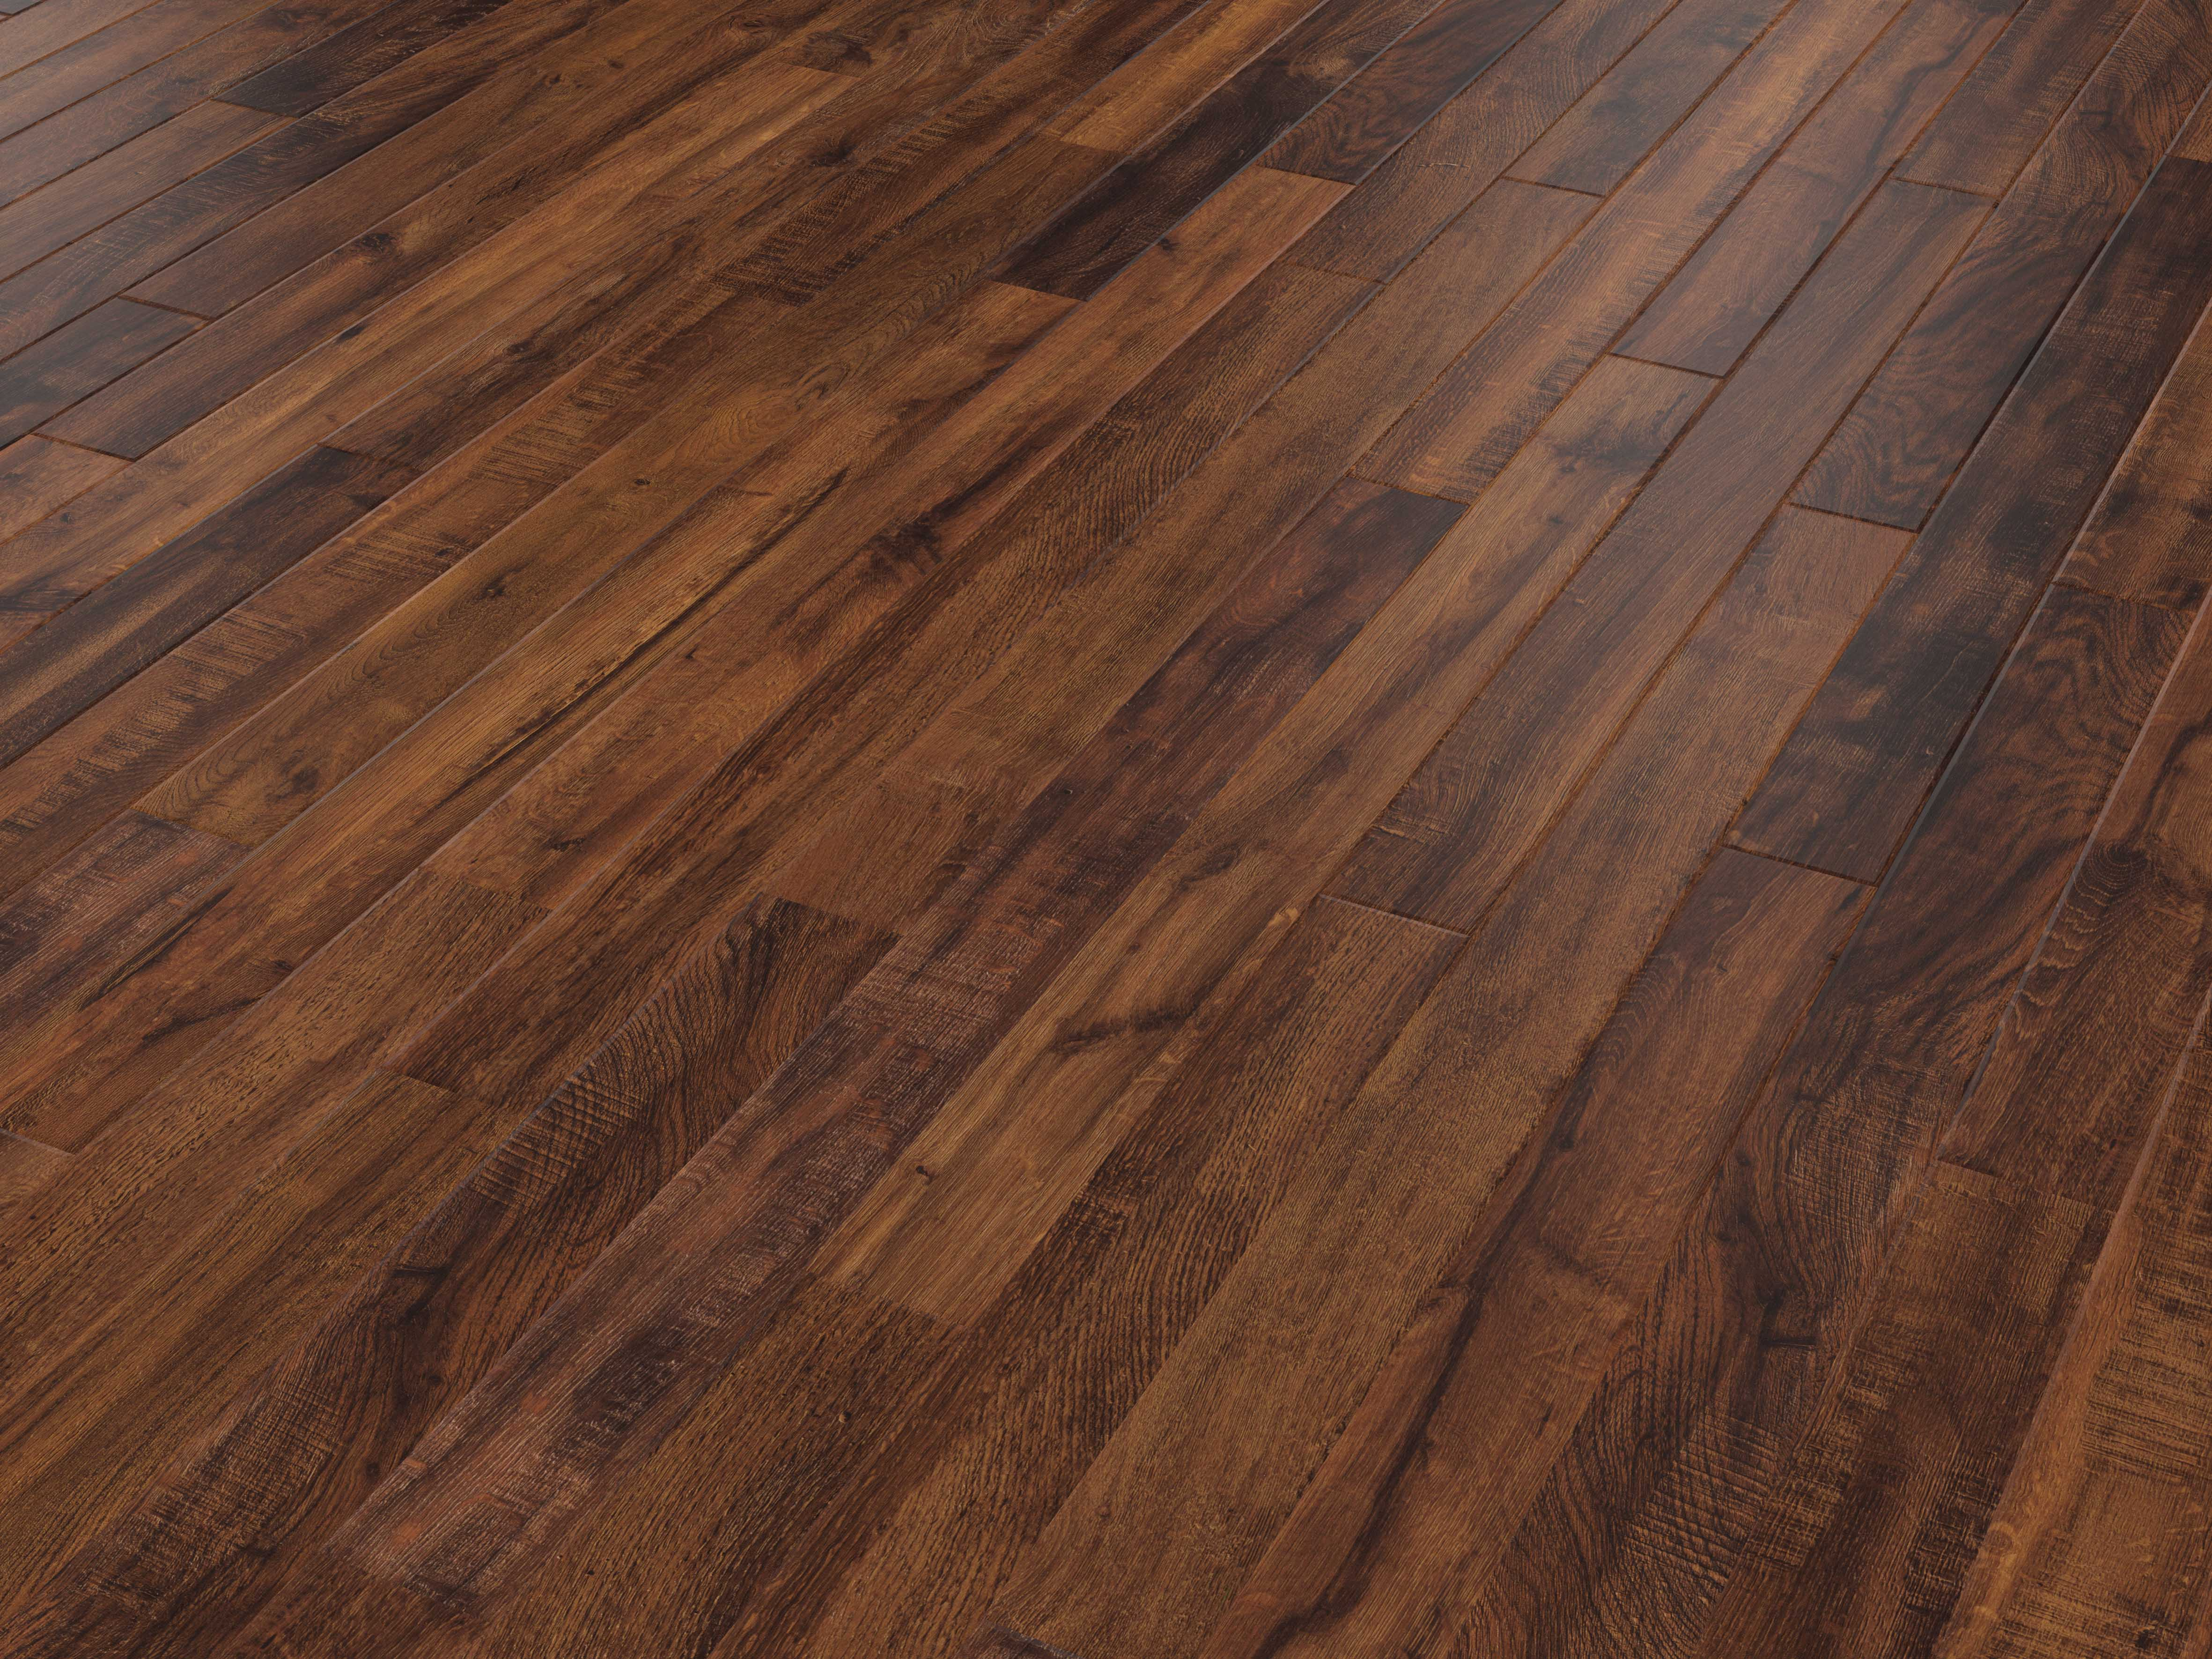 karndean da vinci double smoked acacia rp105 vinyl flooring. Black Bedroom Furniture Sets. Home Design Ideas